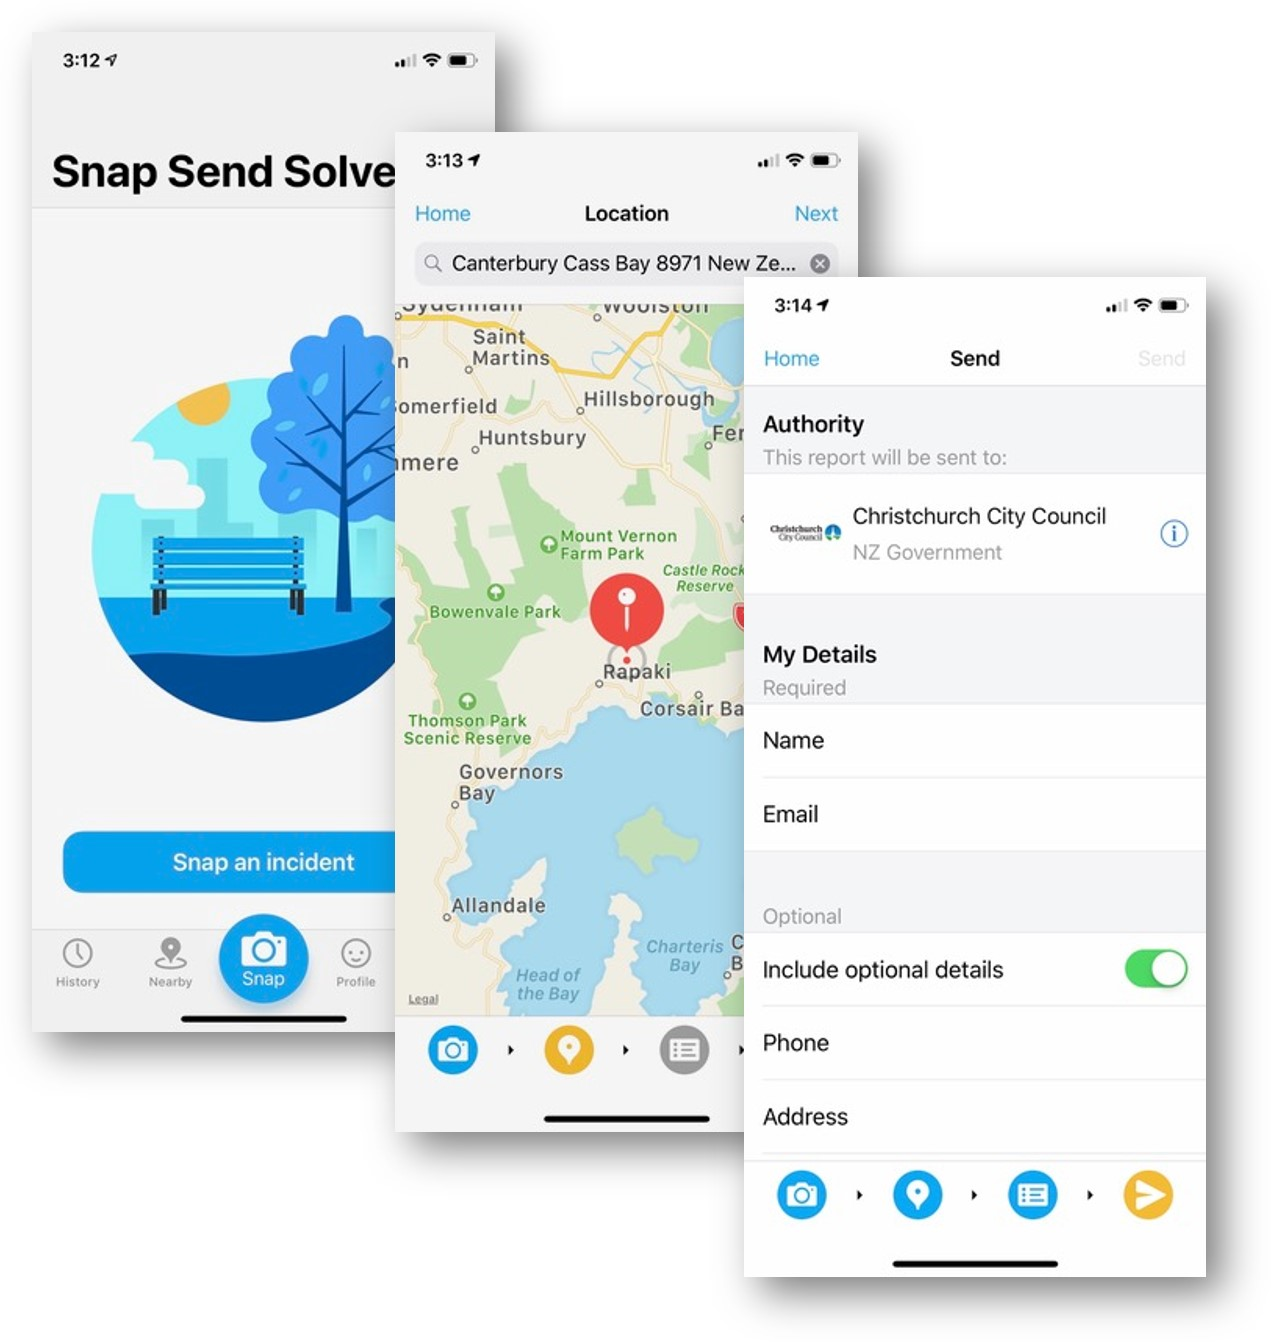 Screenshots of the Snap Send Solve app